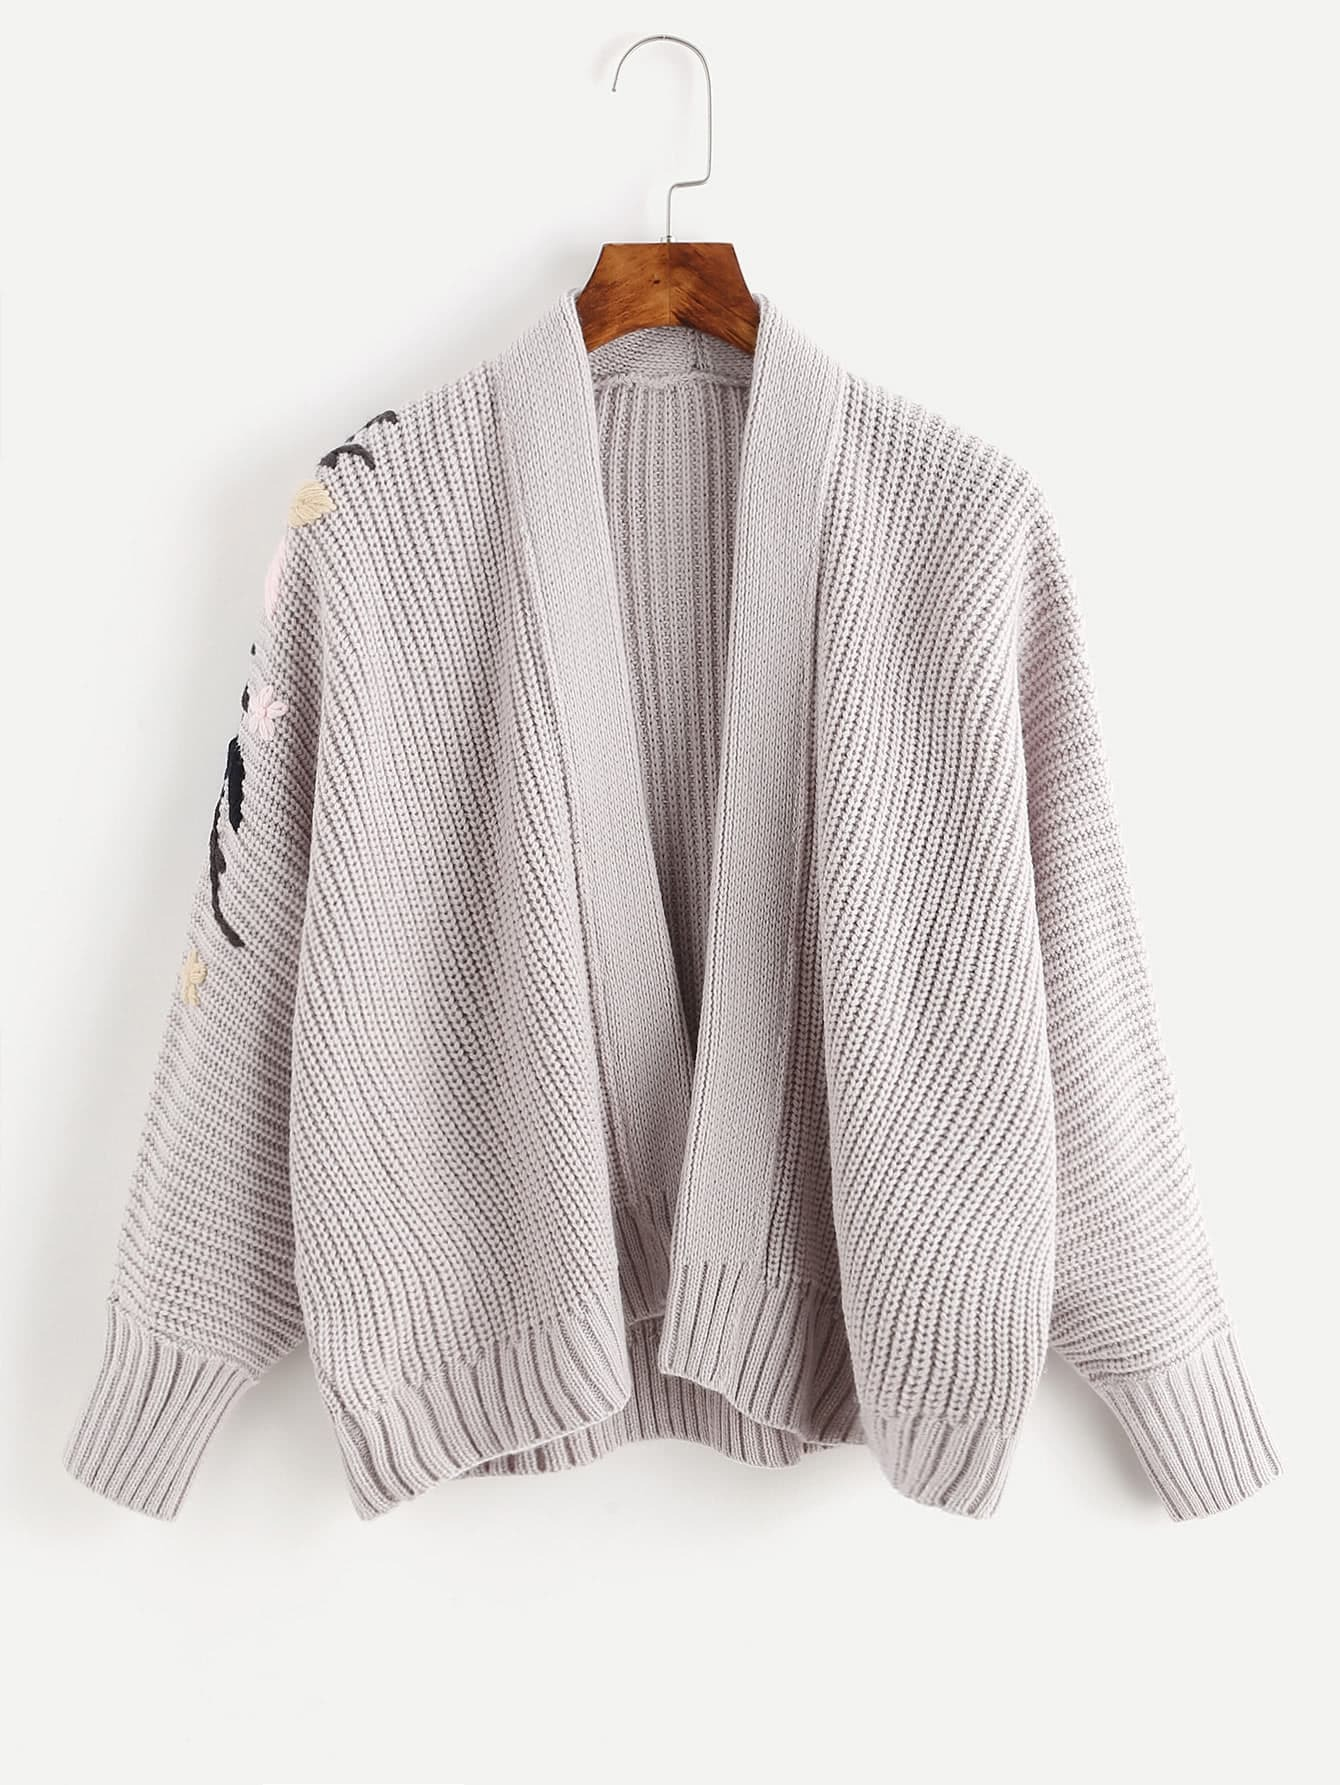 Ribbed Trim Embroidered Knit Jacket sweater170809456